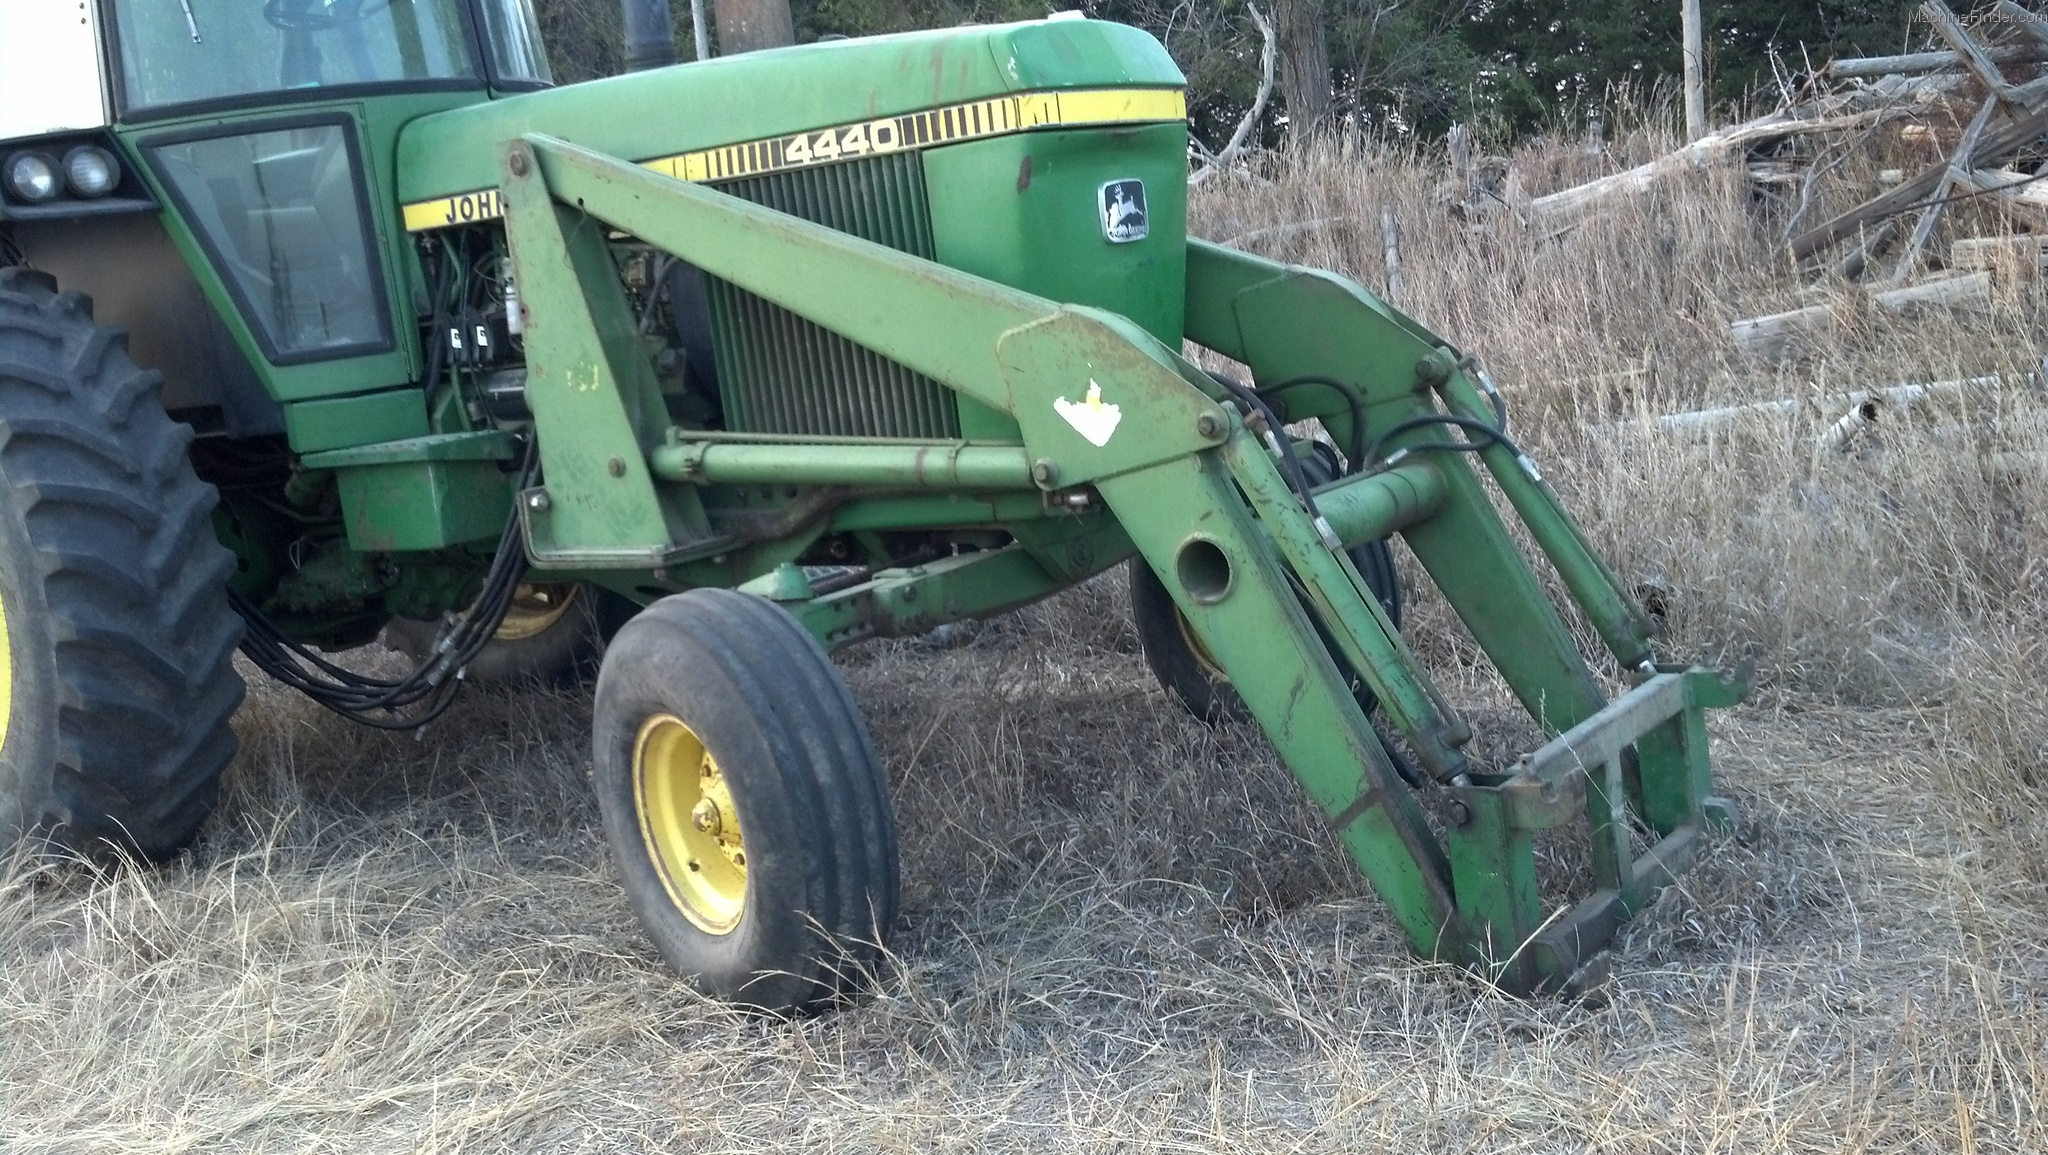 John Deere 158 Tractor Loaders - John Deere MachineFinder